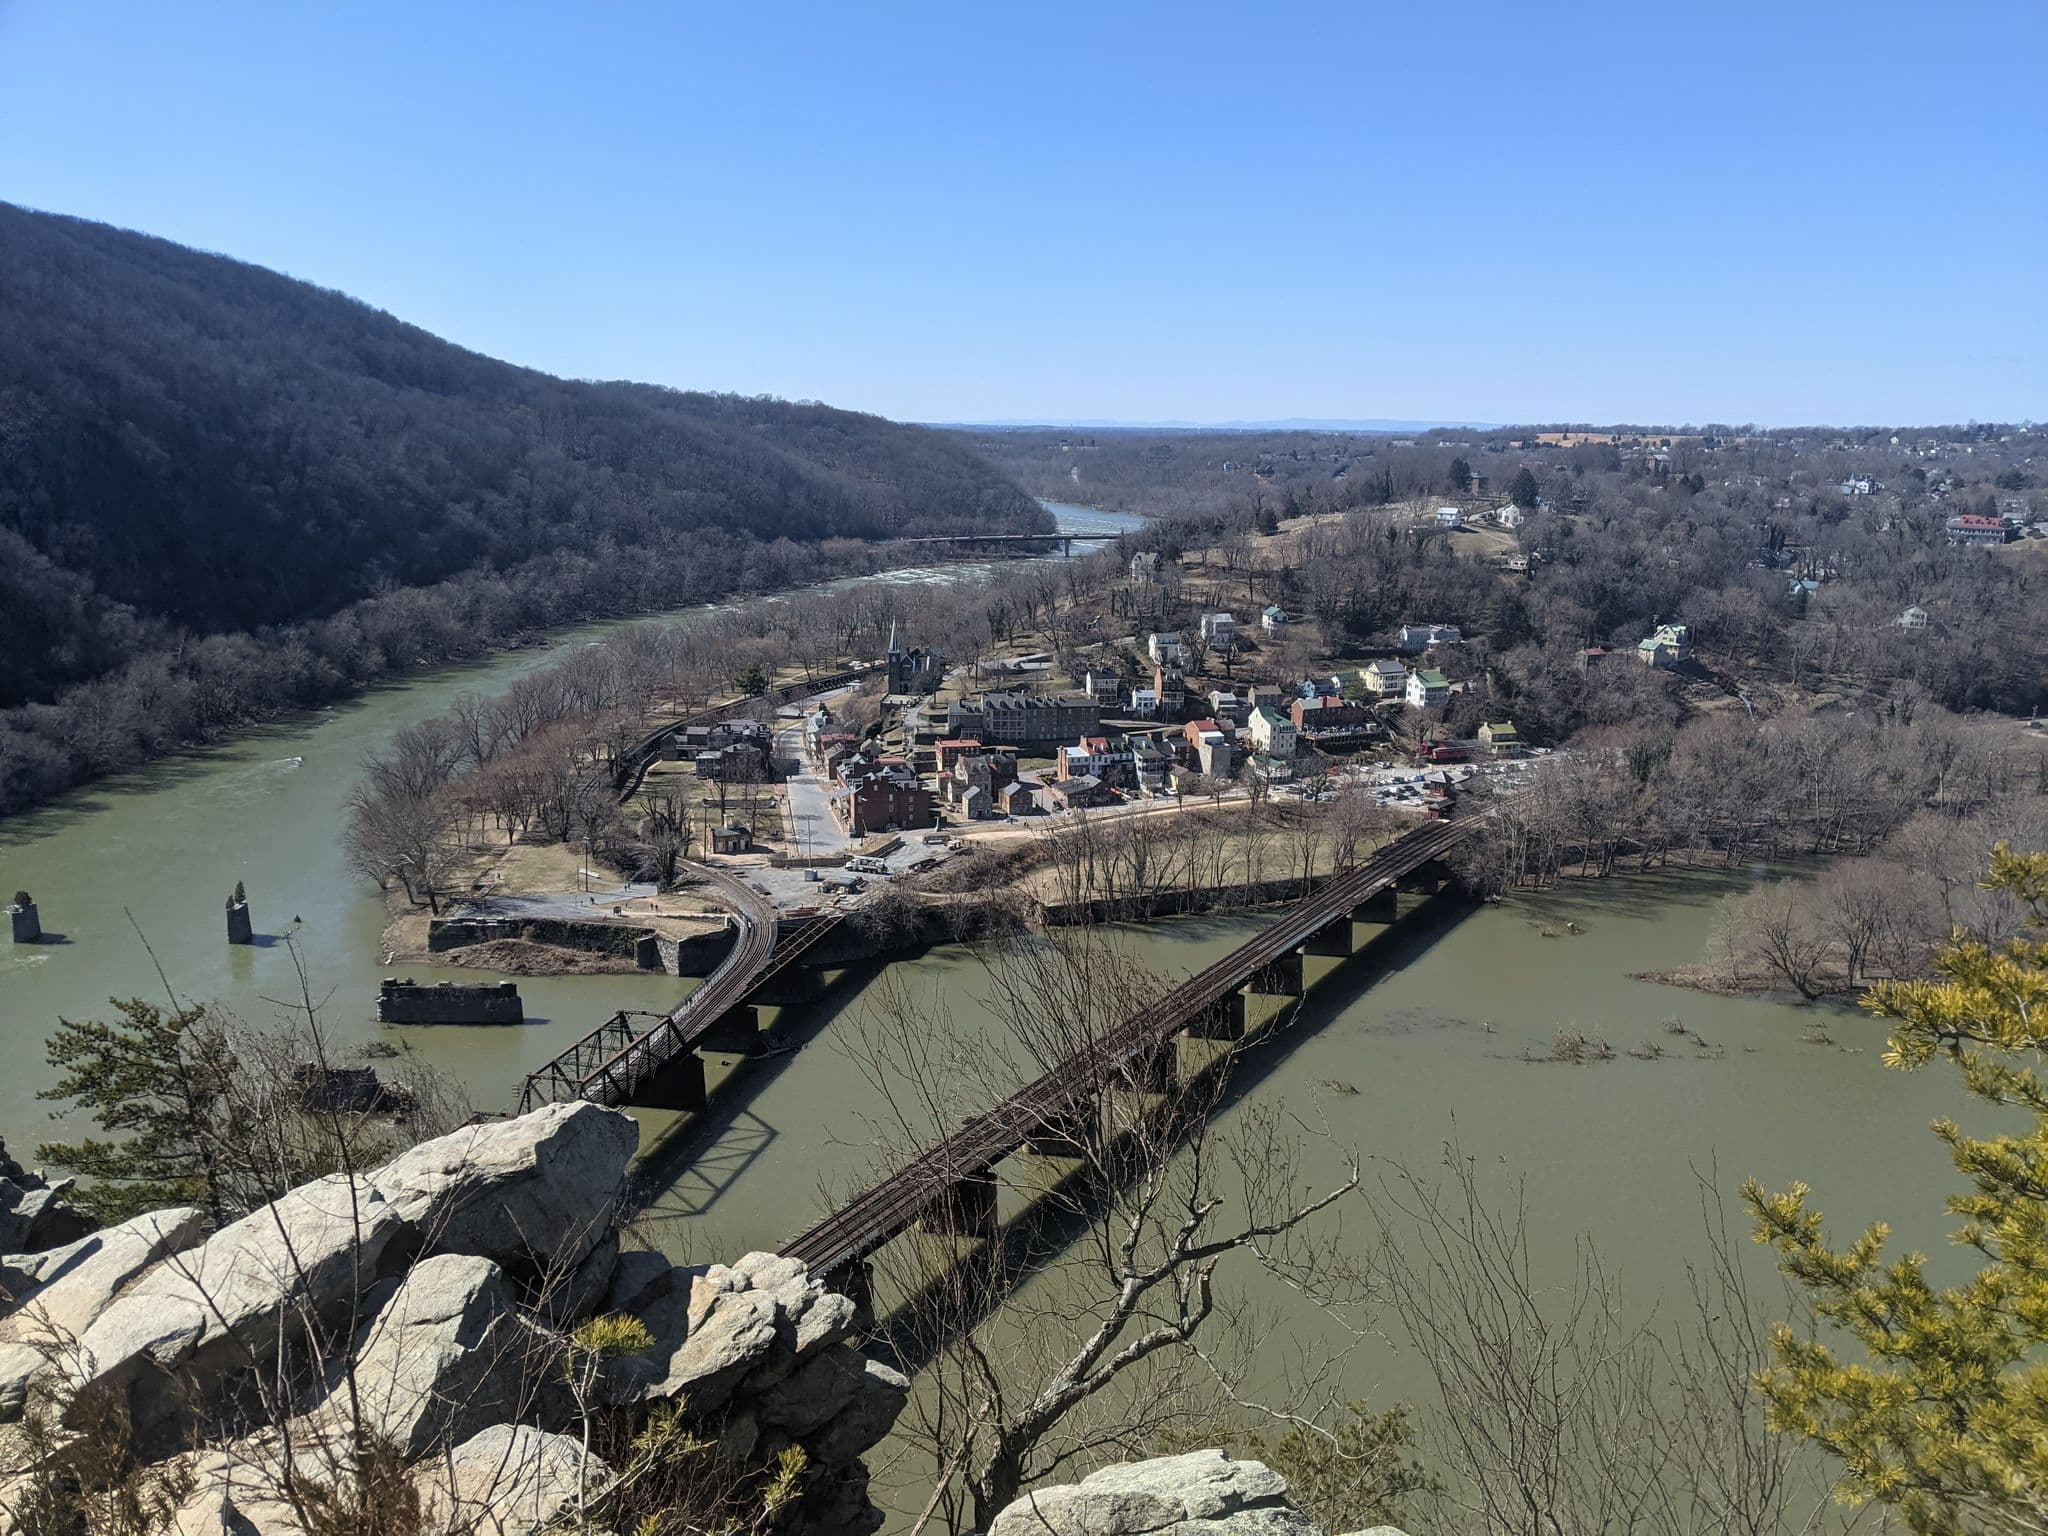 Road Trips From Roanoke - Harper's Ferry and Great Falls, Va - Harpers Ferry